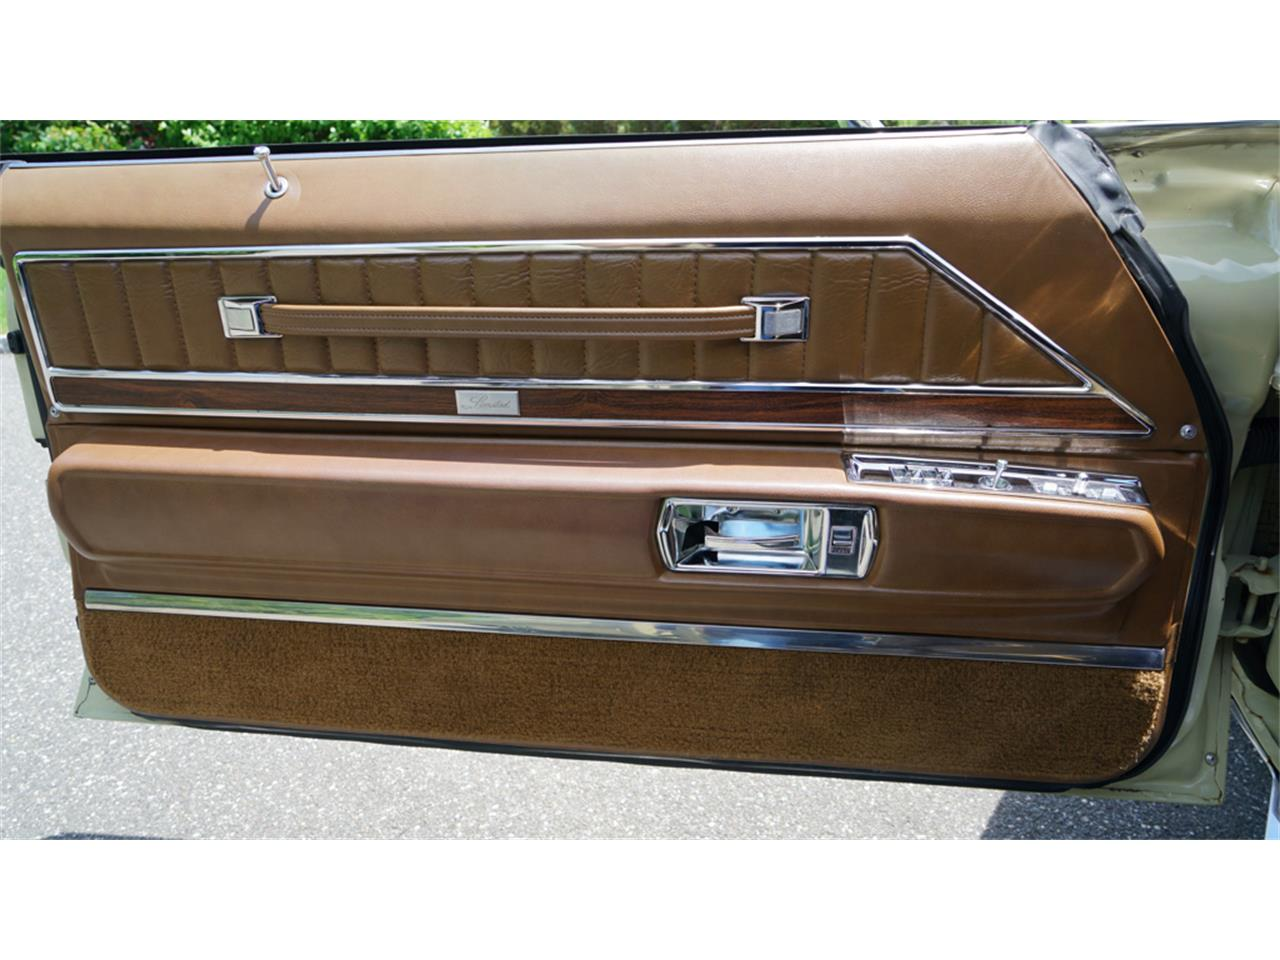 Large Picture of Classic '72 Buick Electra 225 - QAJE